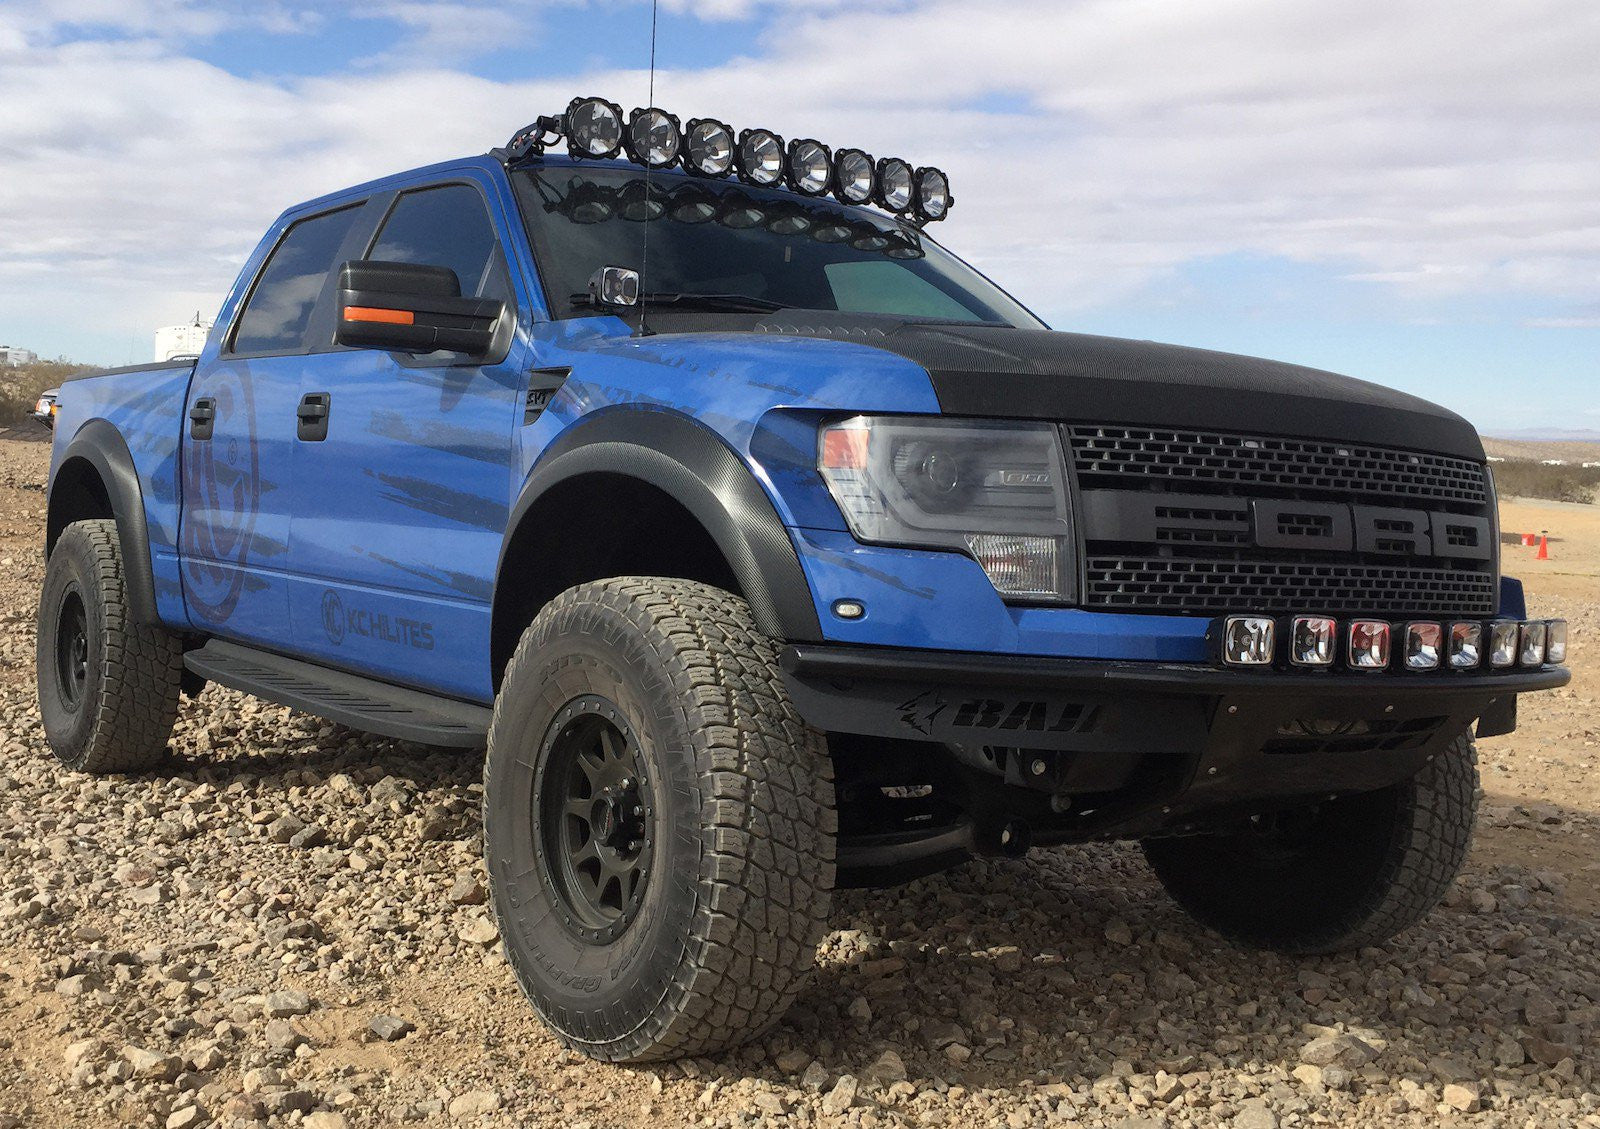 Kc hilites pro6 led light bar raptor kit apollo optics inc pro6 led light bar 2009 2014 ford f 150raptor kit aloadofball